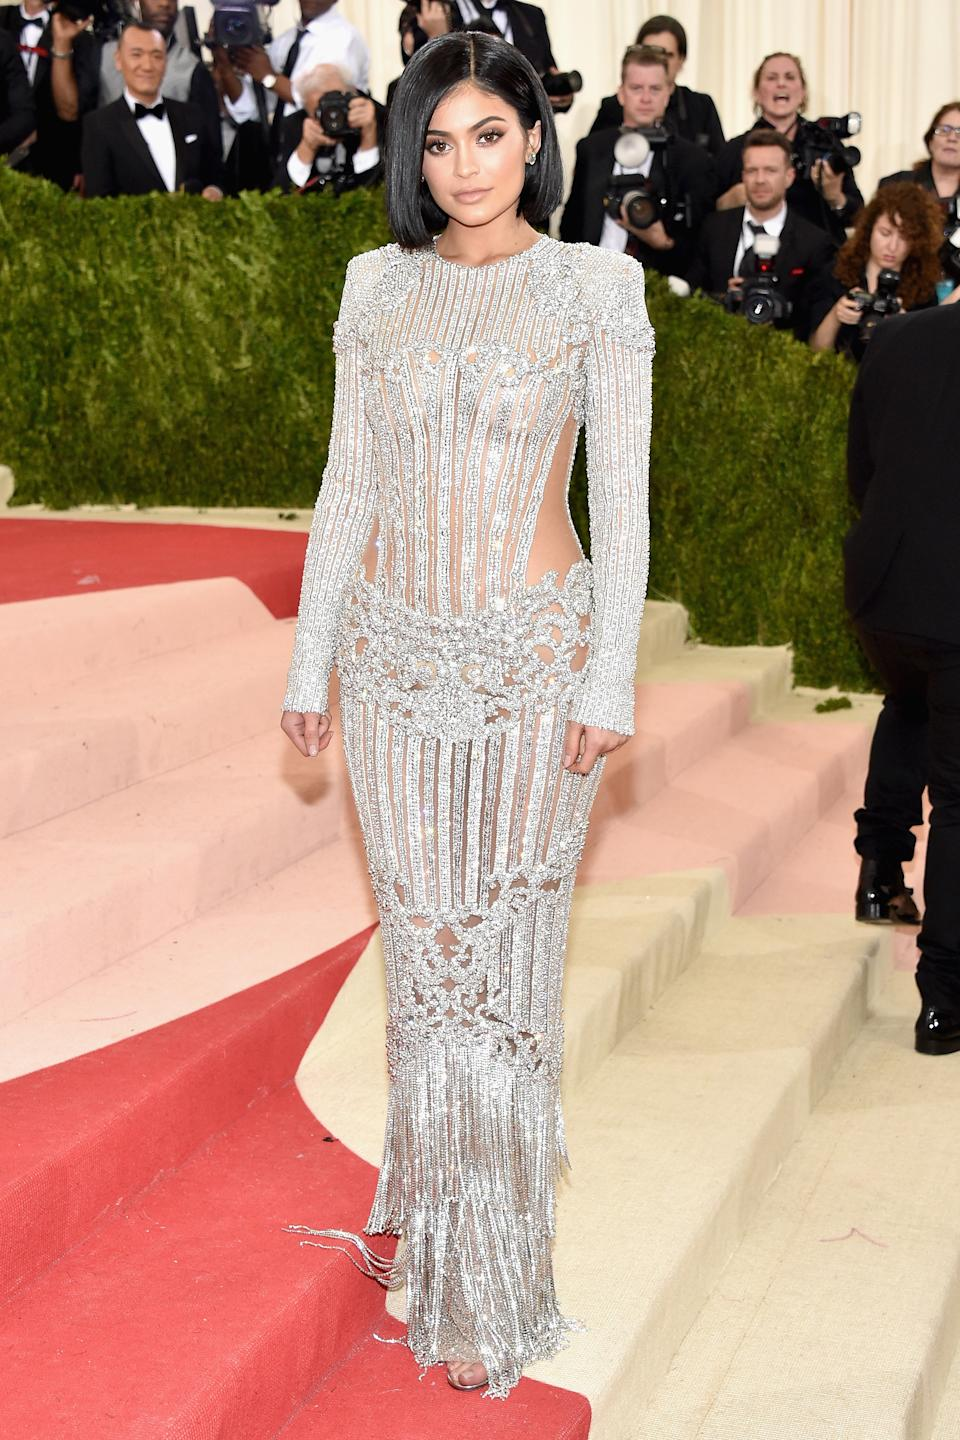 Kylie Jenner attends the 2016 Met Gala